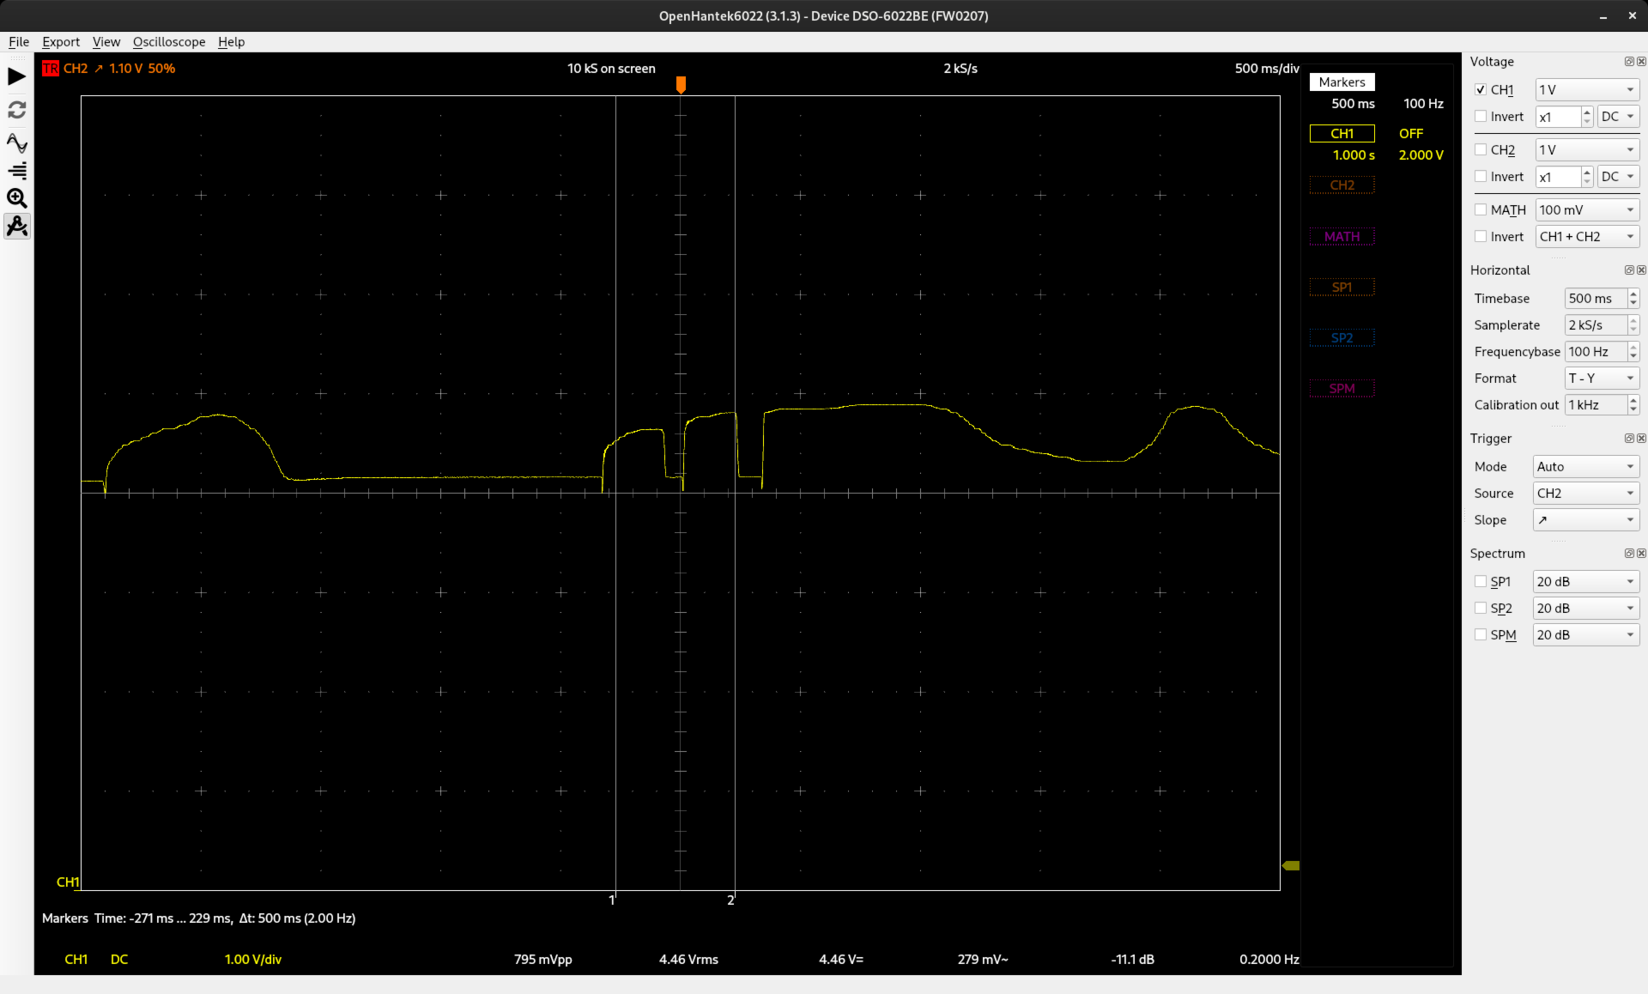 Oscilloscope screenshot, showing some good variation as I blow on the mouthpiece